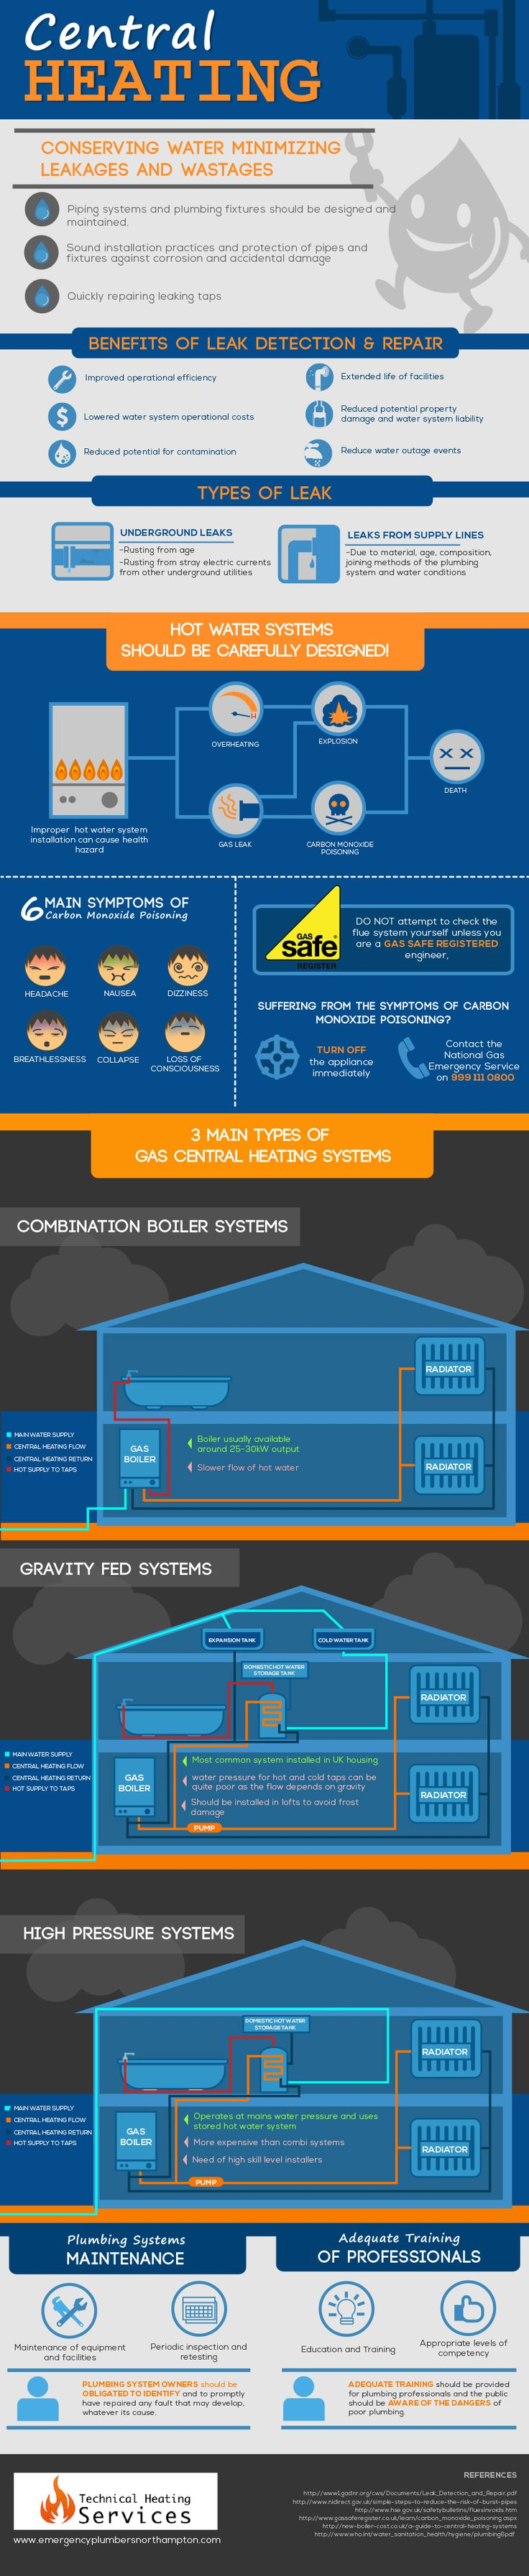 Ensuring Clean Water Supply and Adequate Disposal of Waste Water through Professional Plumbers Infographic.